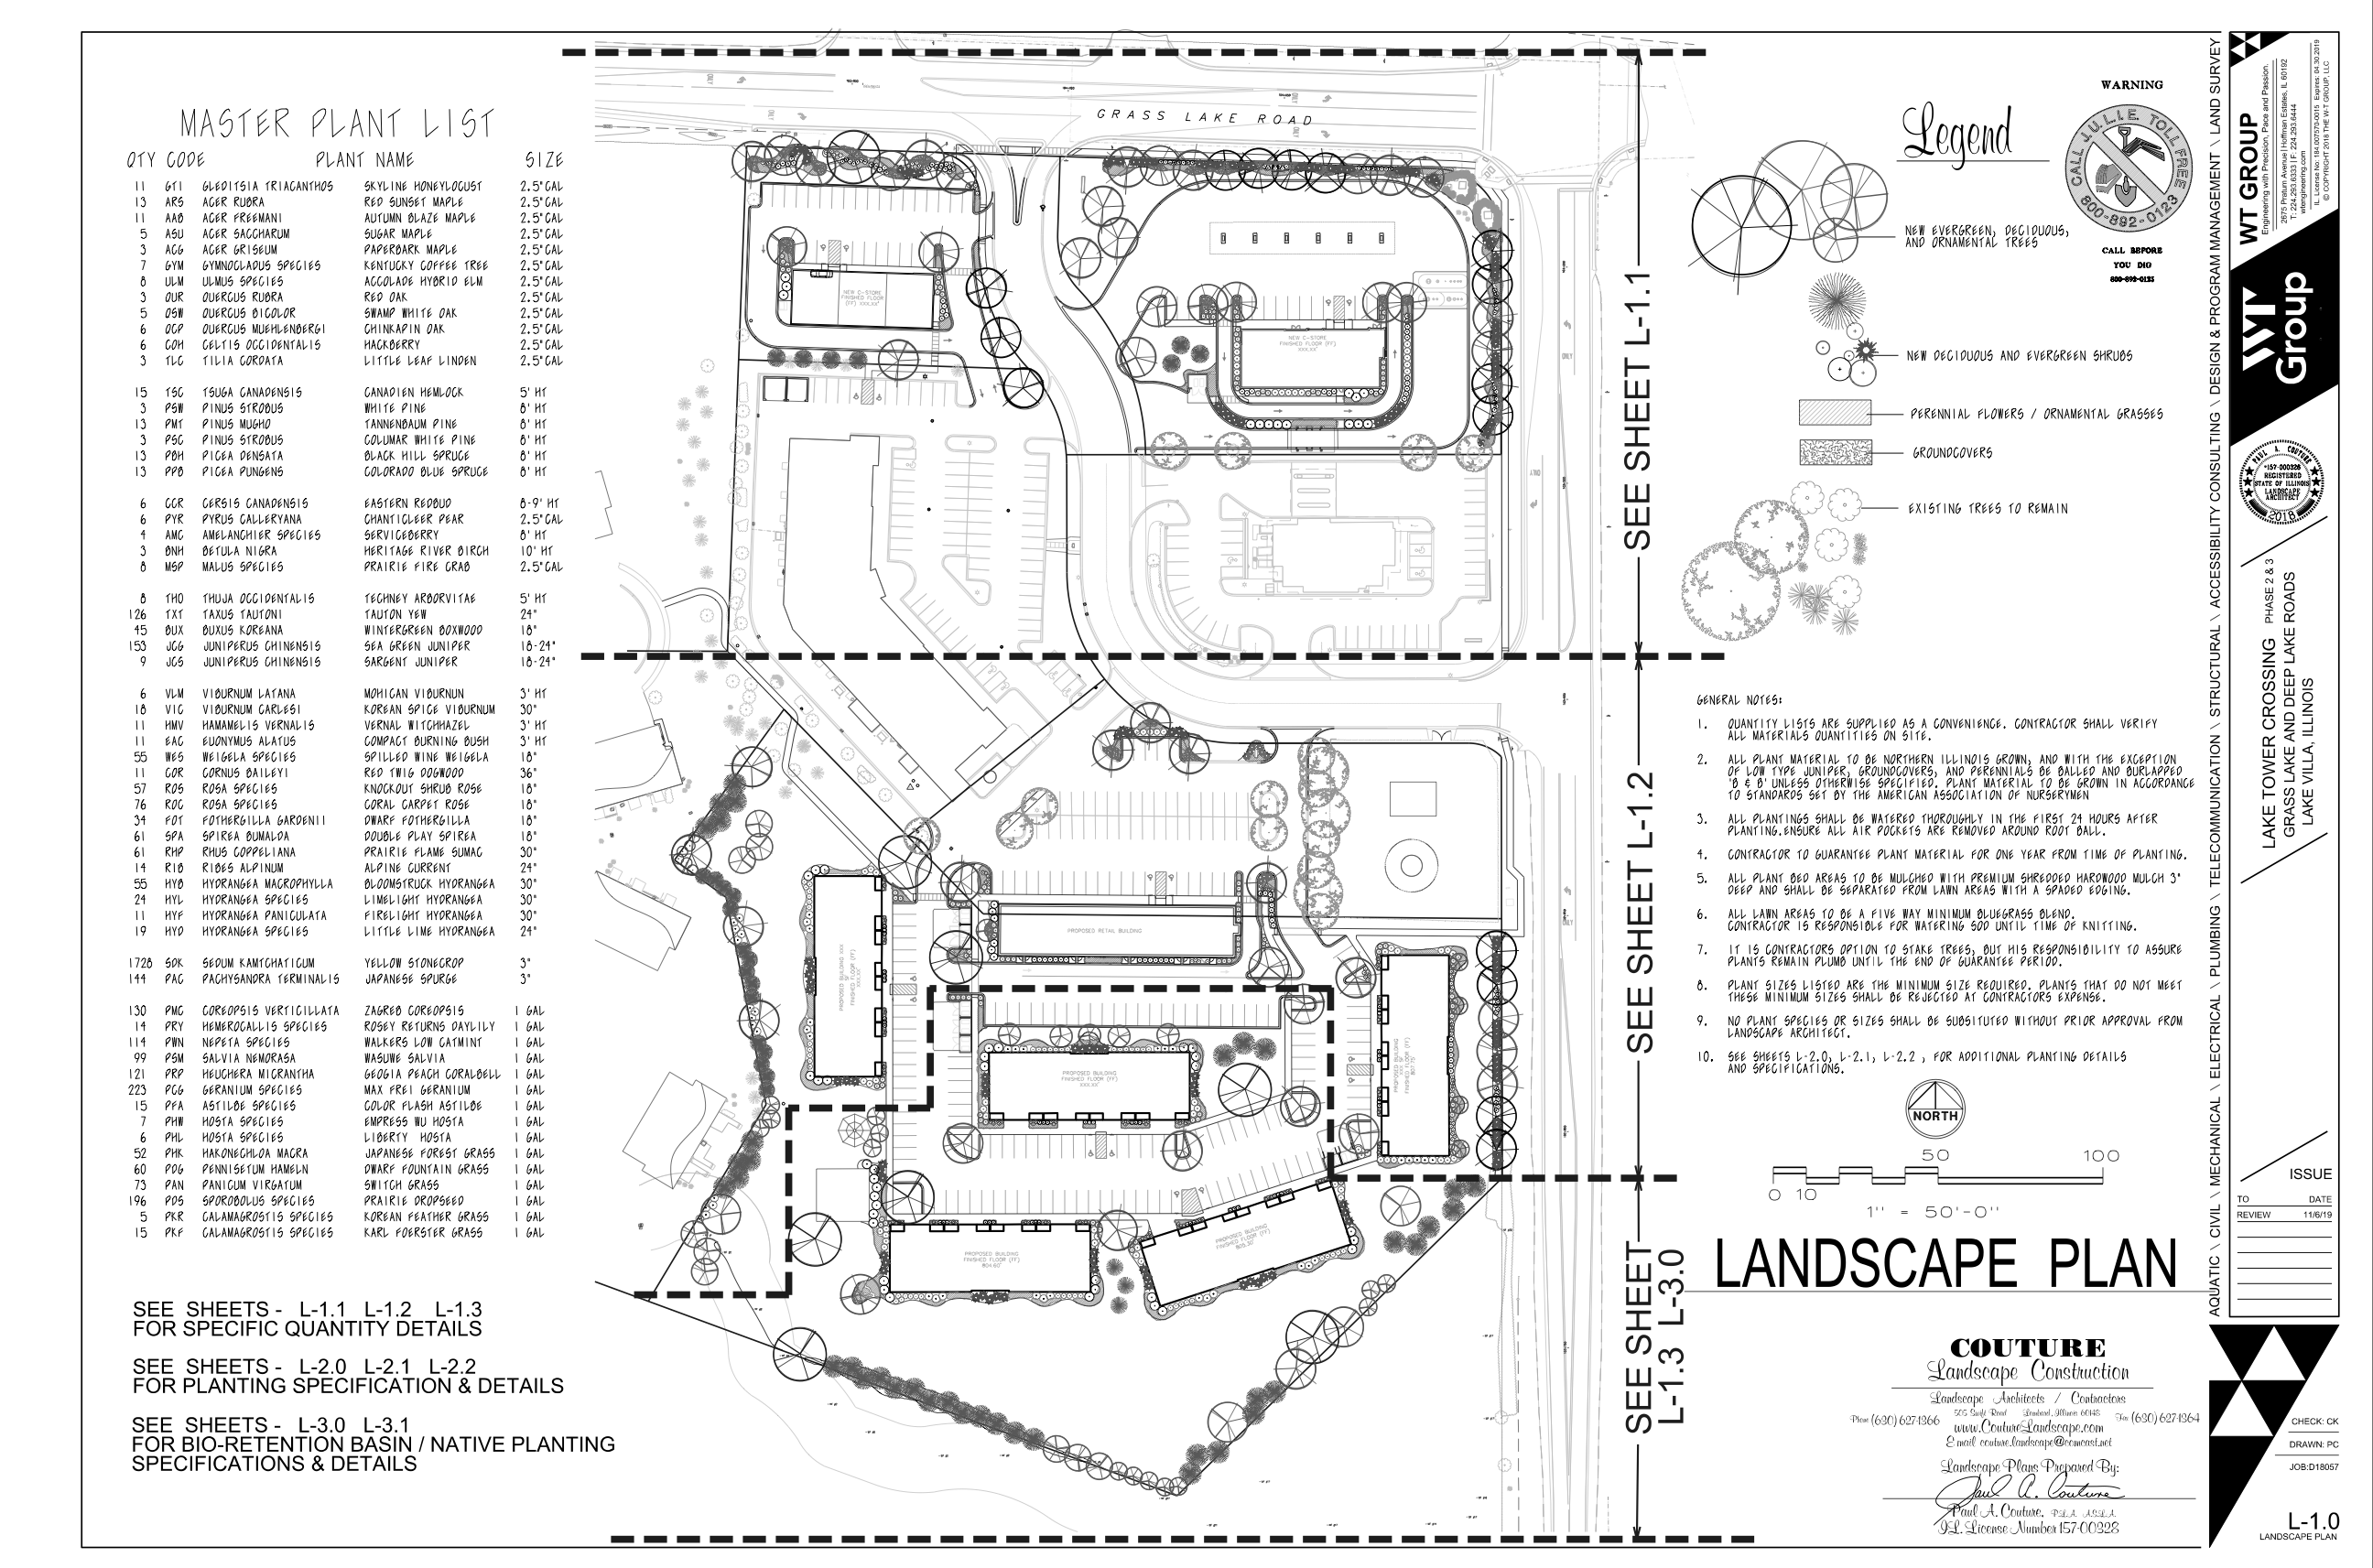 Tower Drive Development- Landscape Plans